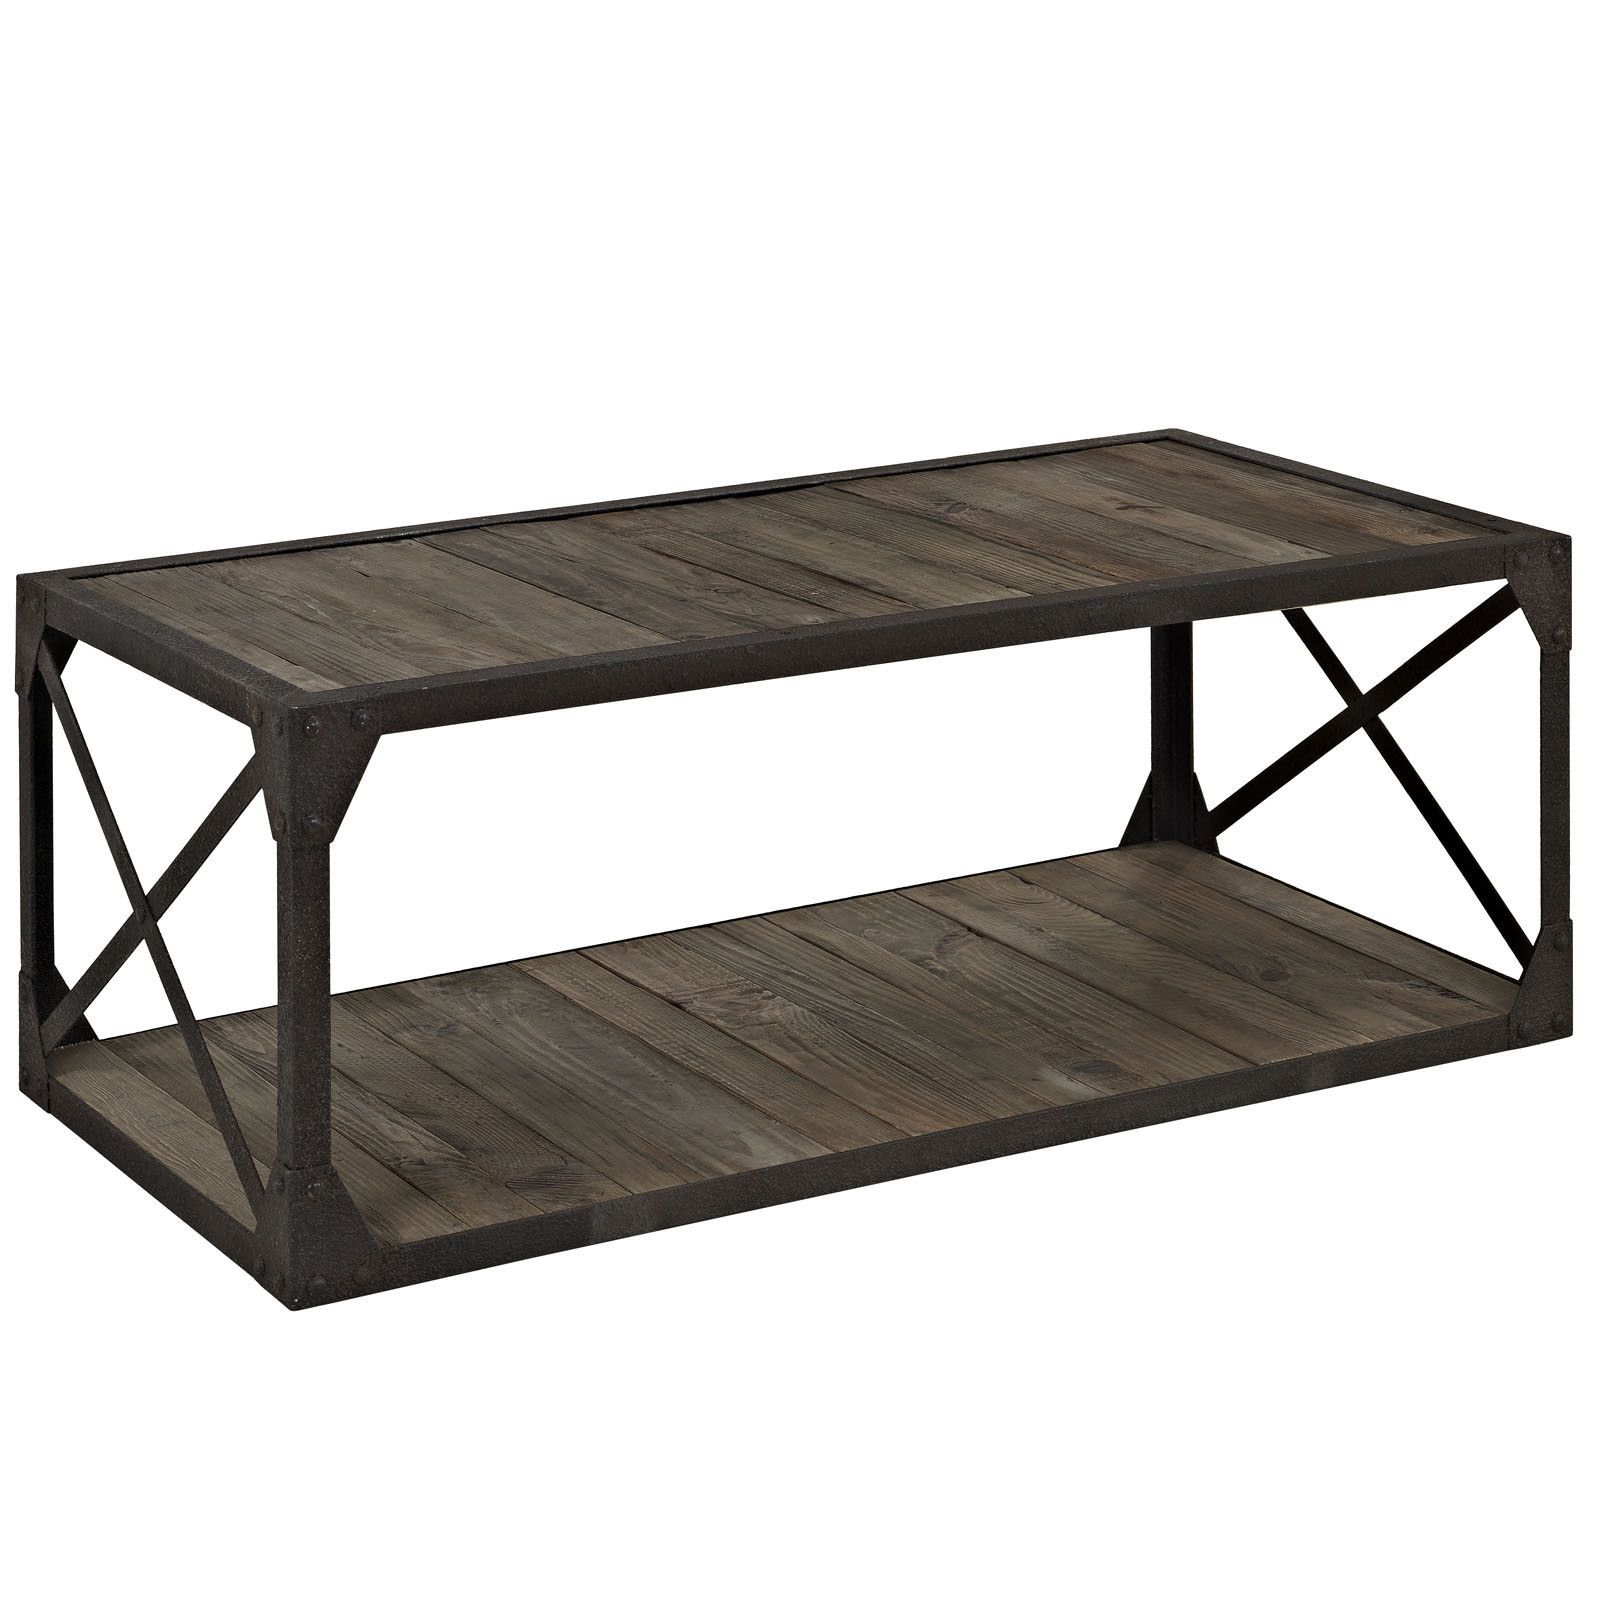 Suffolk Simplicity Reclaimed Wood Square Industrial Coffee: Industrial Modern Coffee Table – First Of A Kind